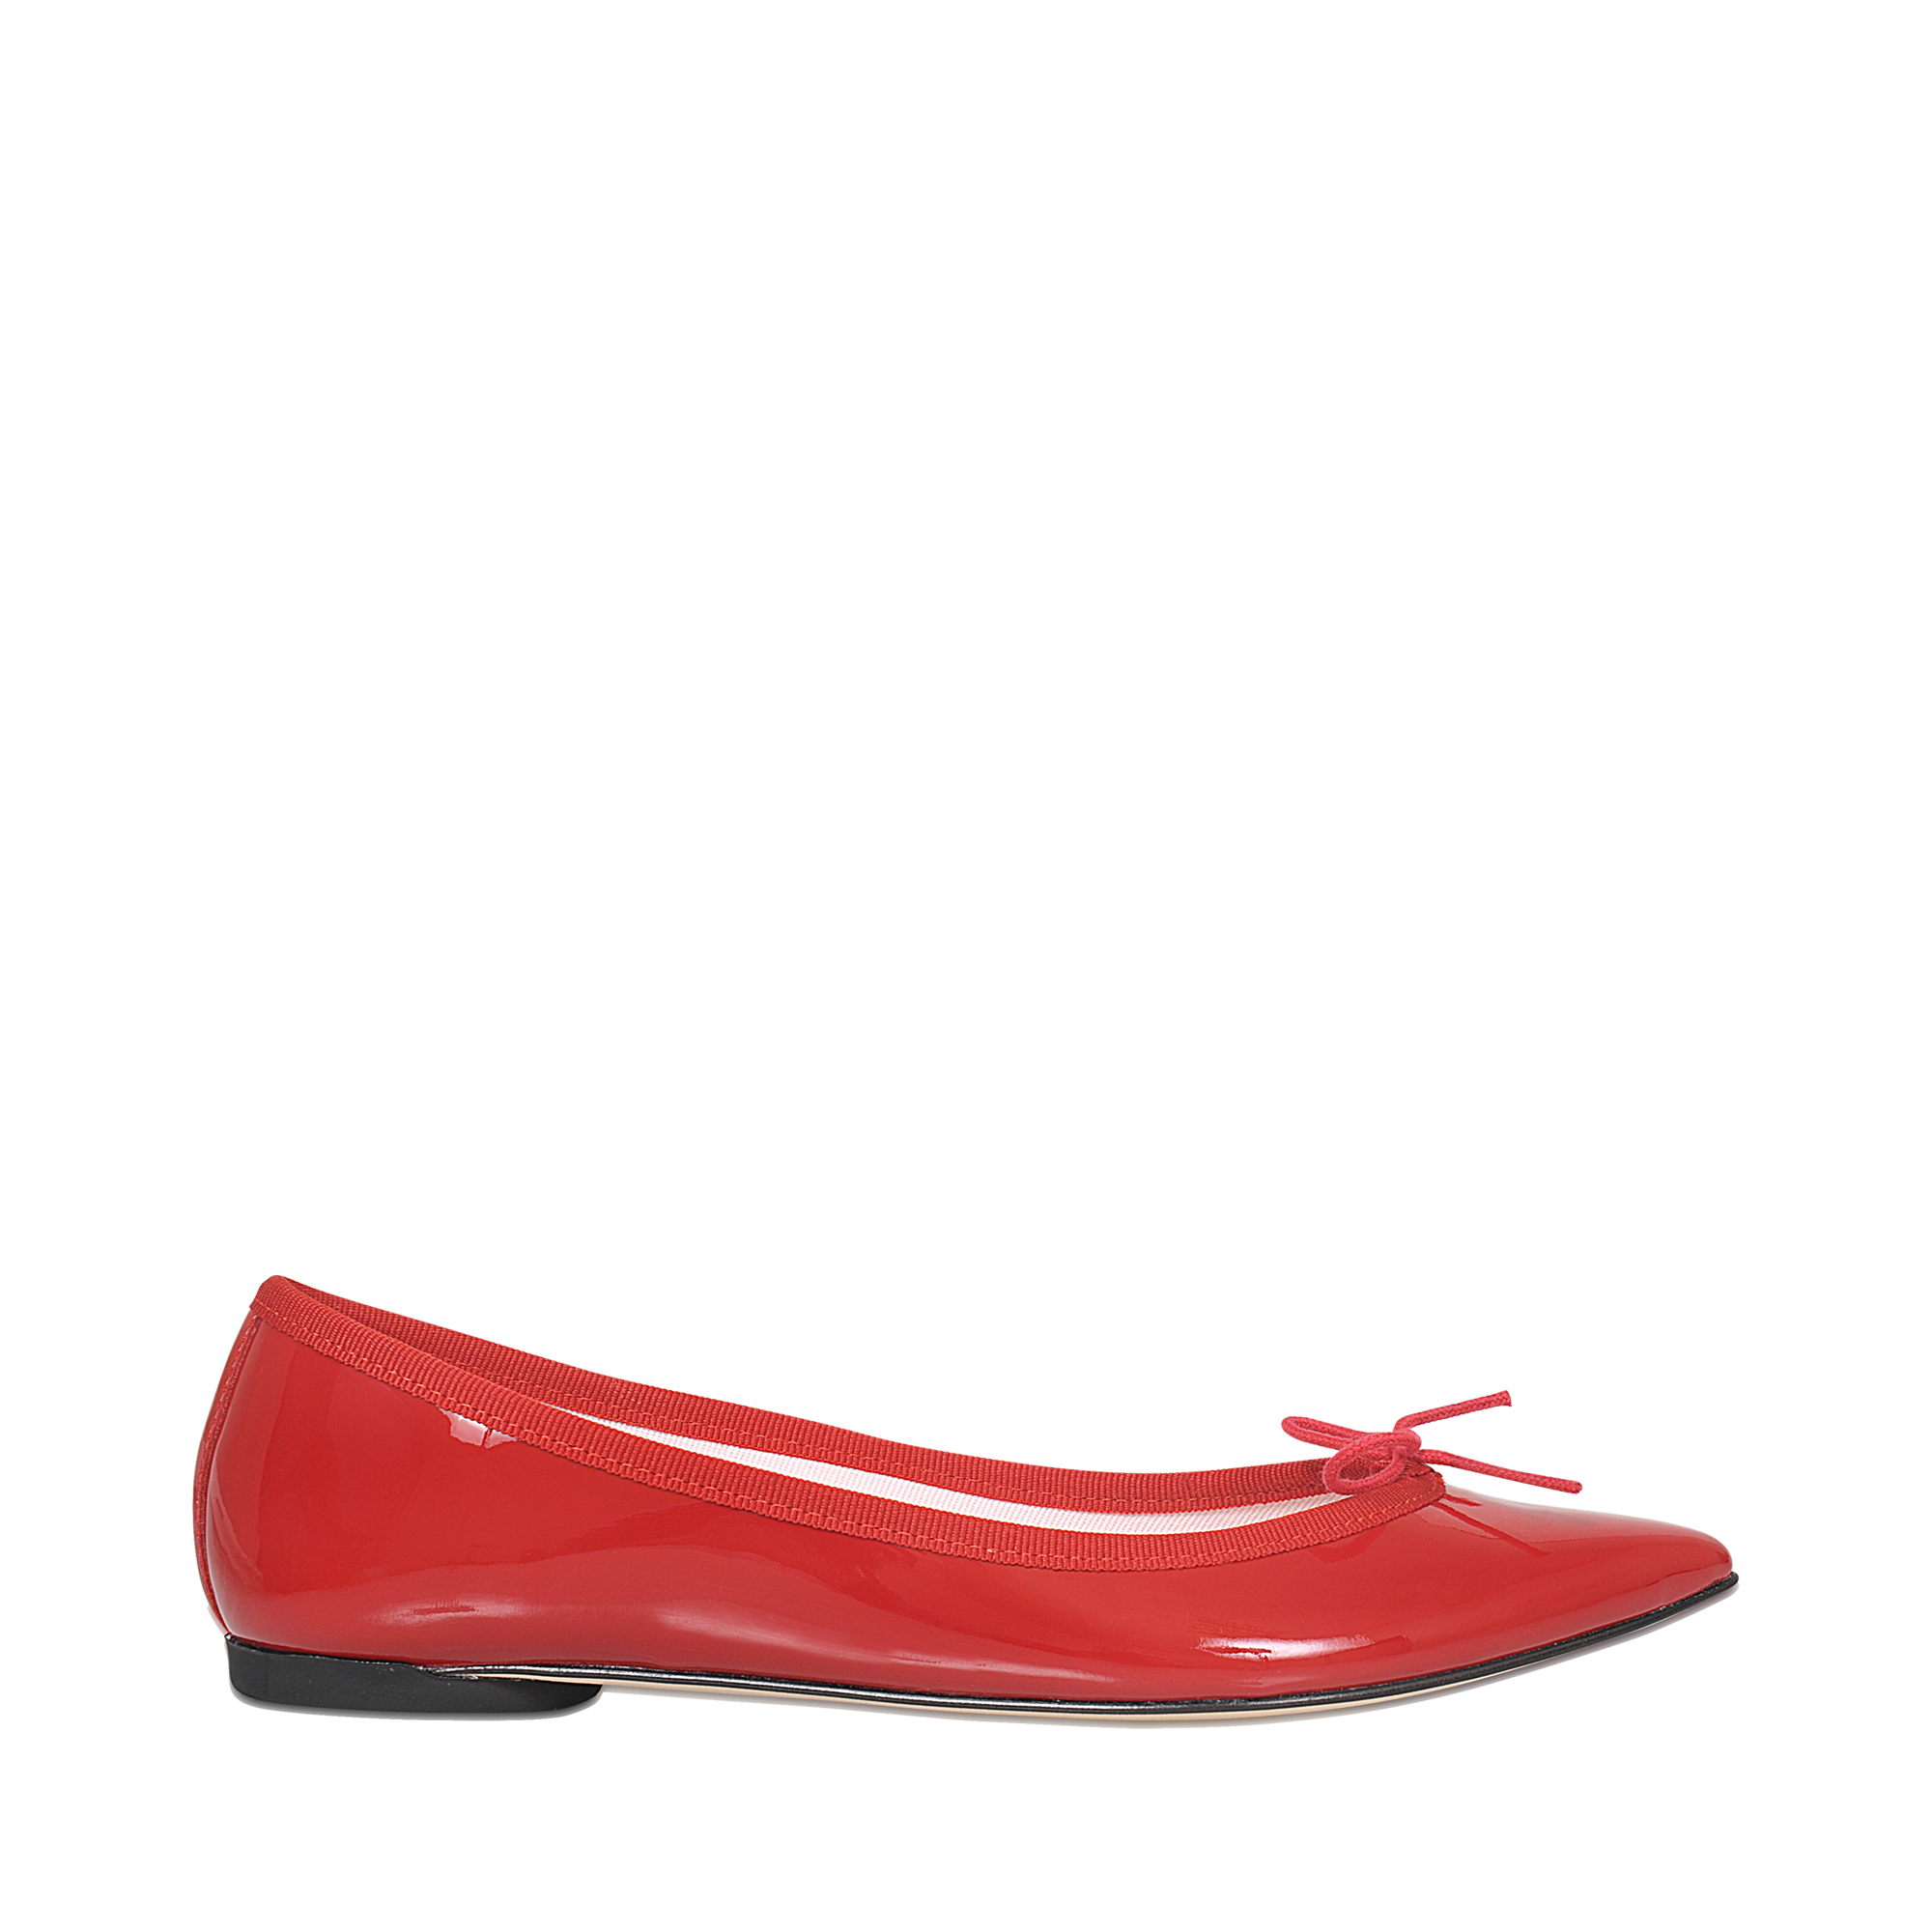 Chaussures repetto femme soldes